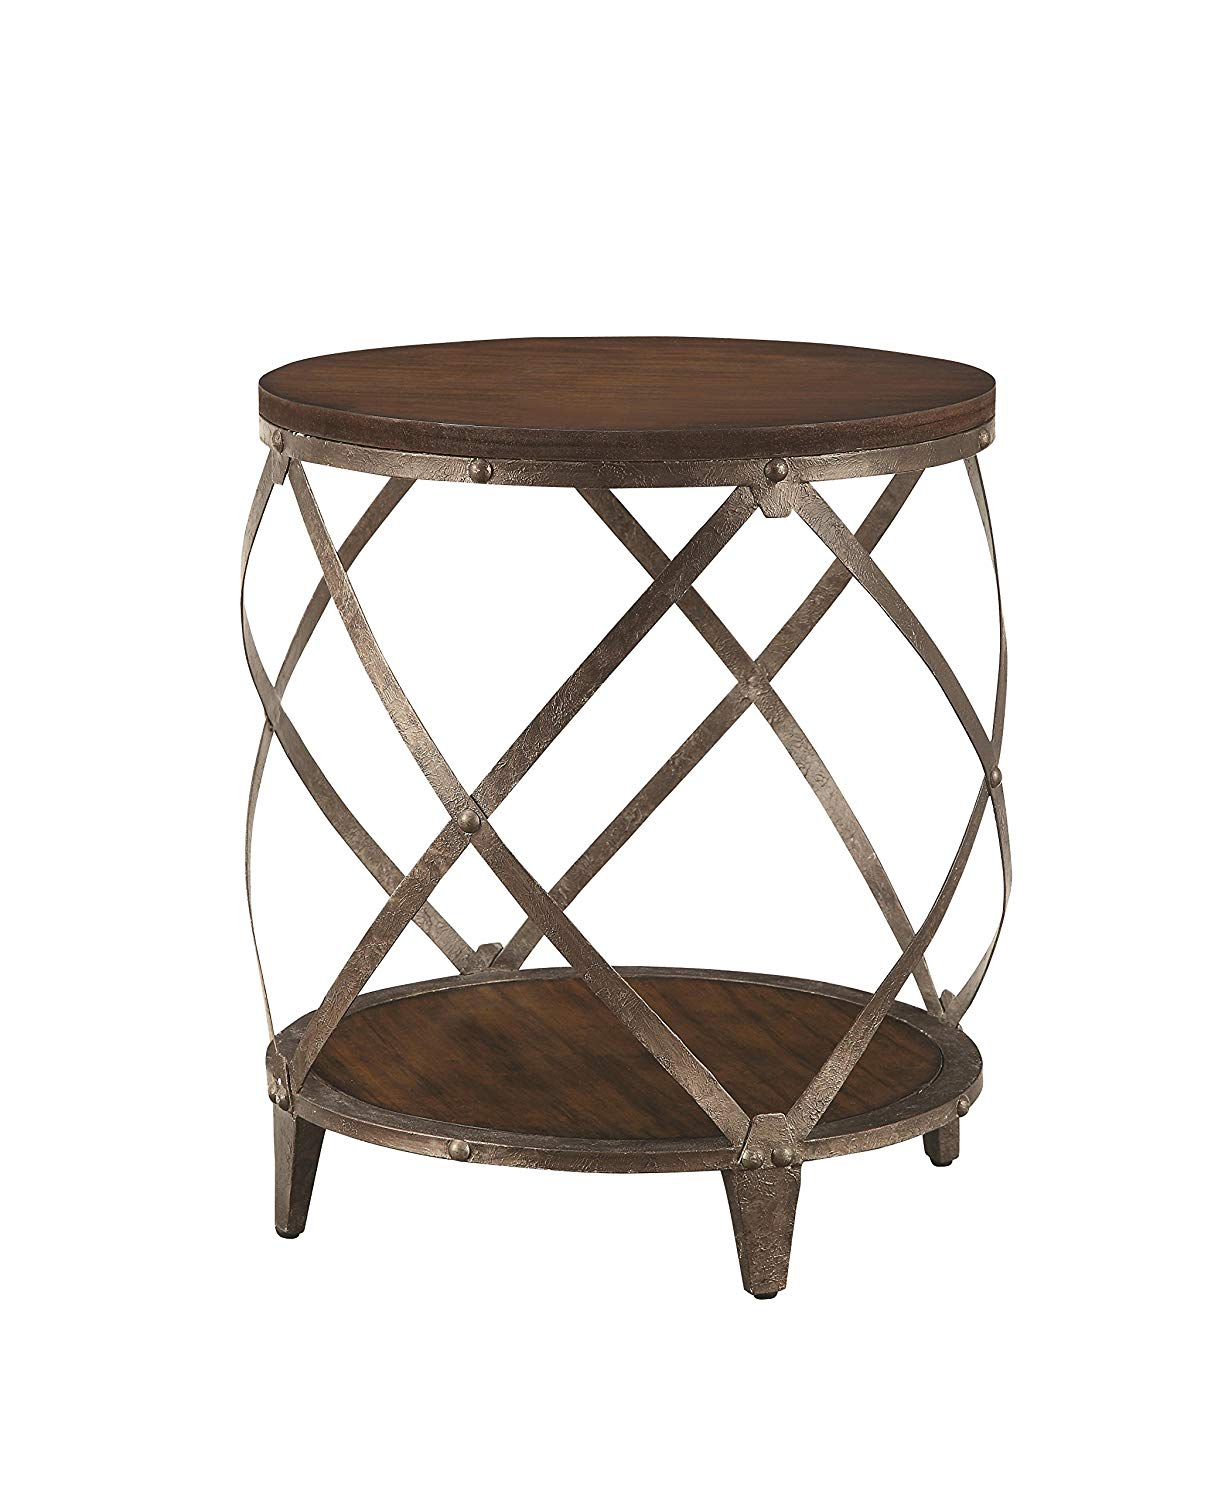 hobby lobby coupon the terrific cool end table sets free coaster home furnishings casual accent oak and shipping red brown kitchen dining small dark wood ashley furniture living